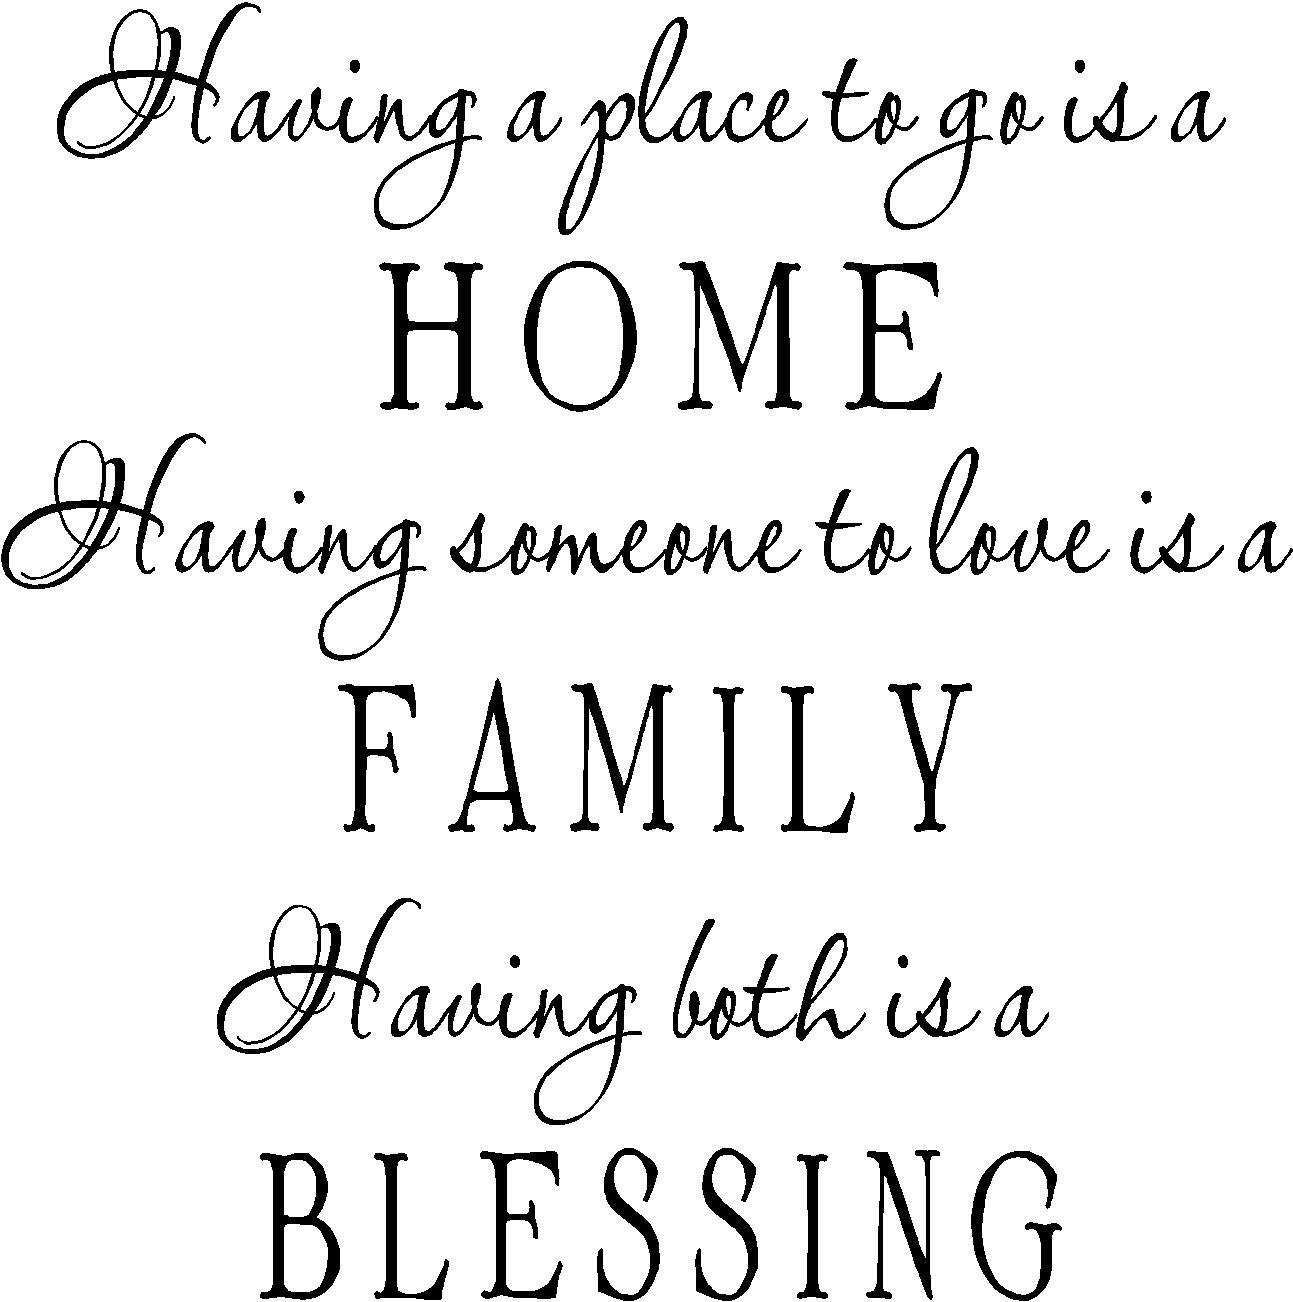 I Would Love To Have This Latin Quote Somewhere As I: Having A Place To Go Is Home Having Someon To Love Is Family